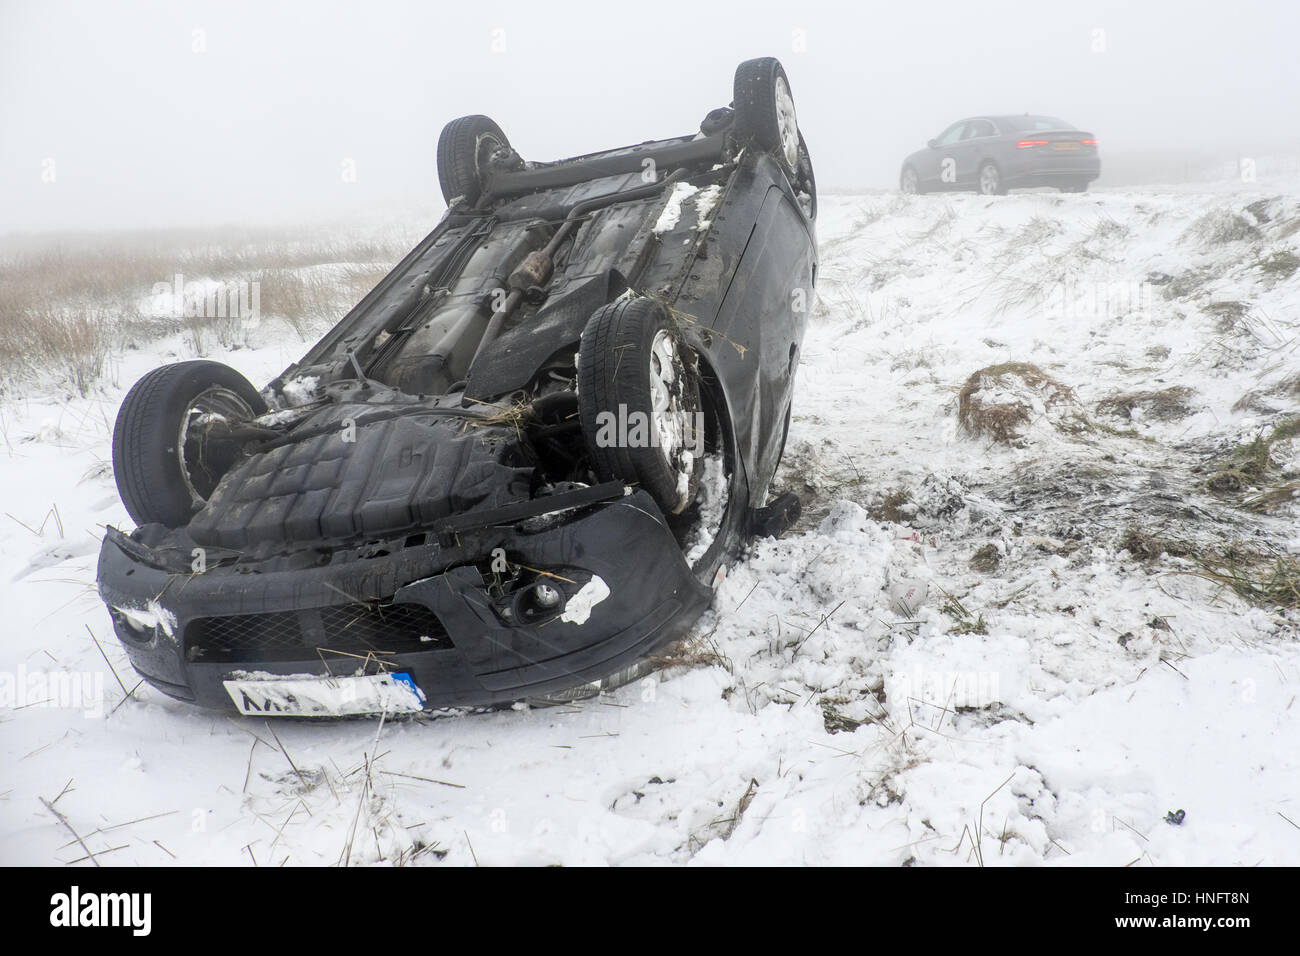 rta car crash in snow and ice on the a537 cat and. Black Bedroom Furniture Sets. Home Design Ideas